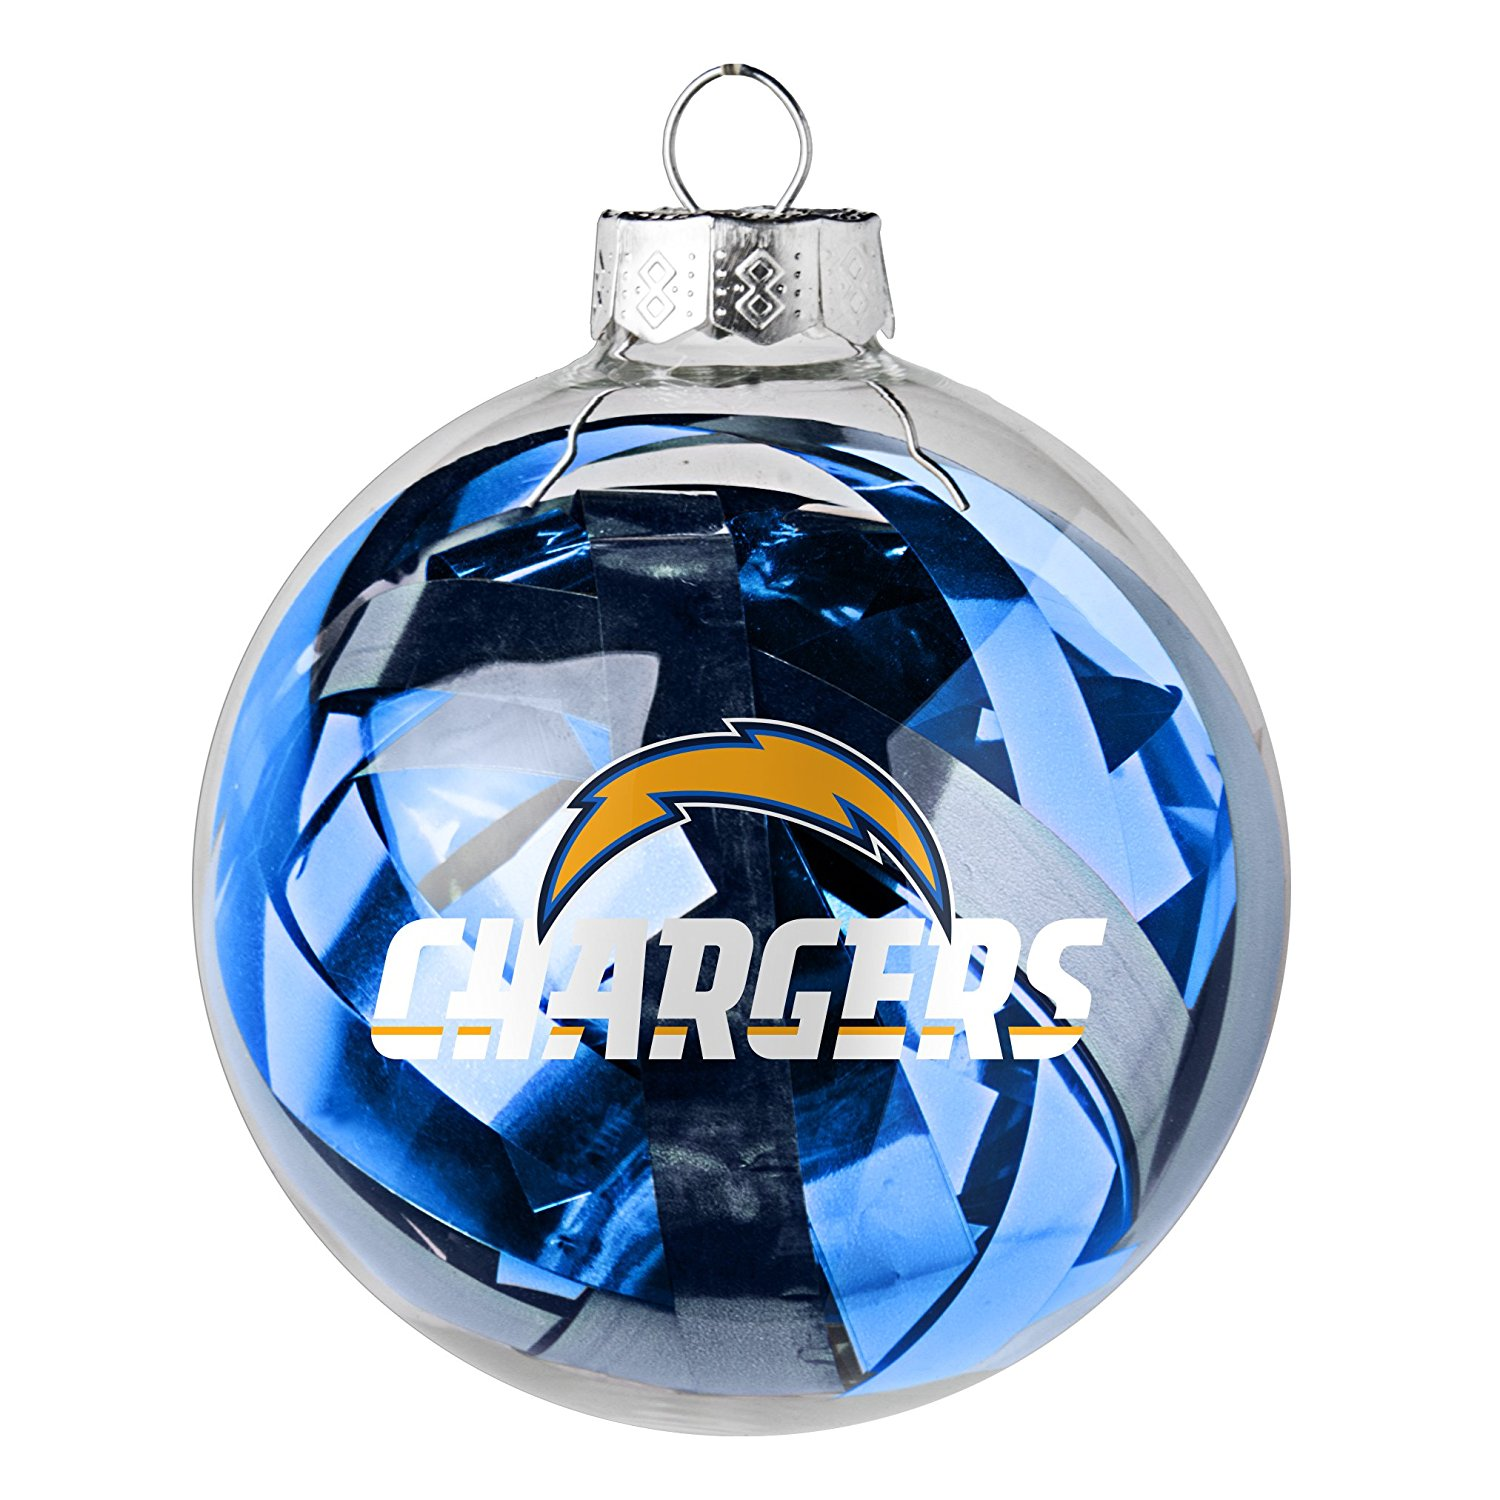 San Diego Chargers Christmas Ornaments: Oakland Raiders Christmas Tree Ornaments